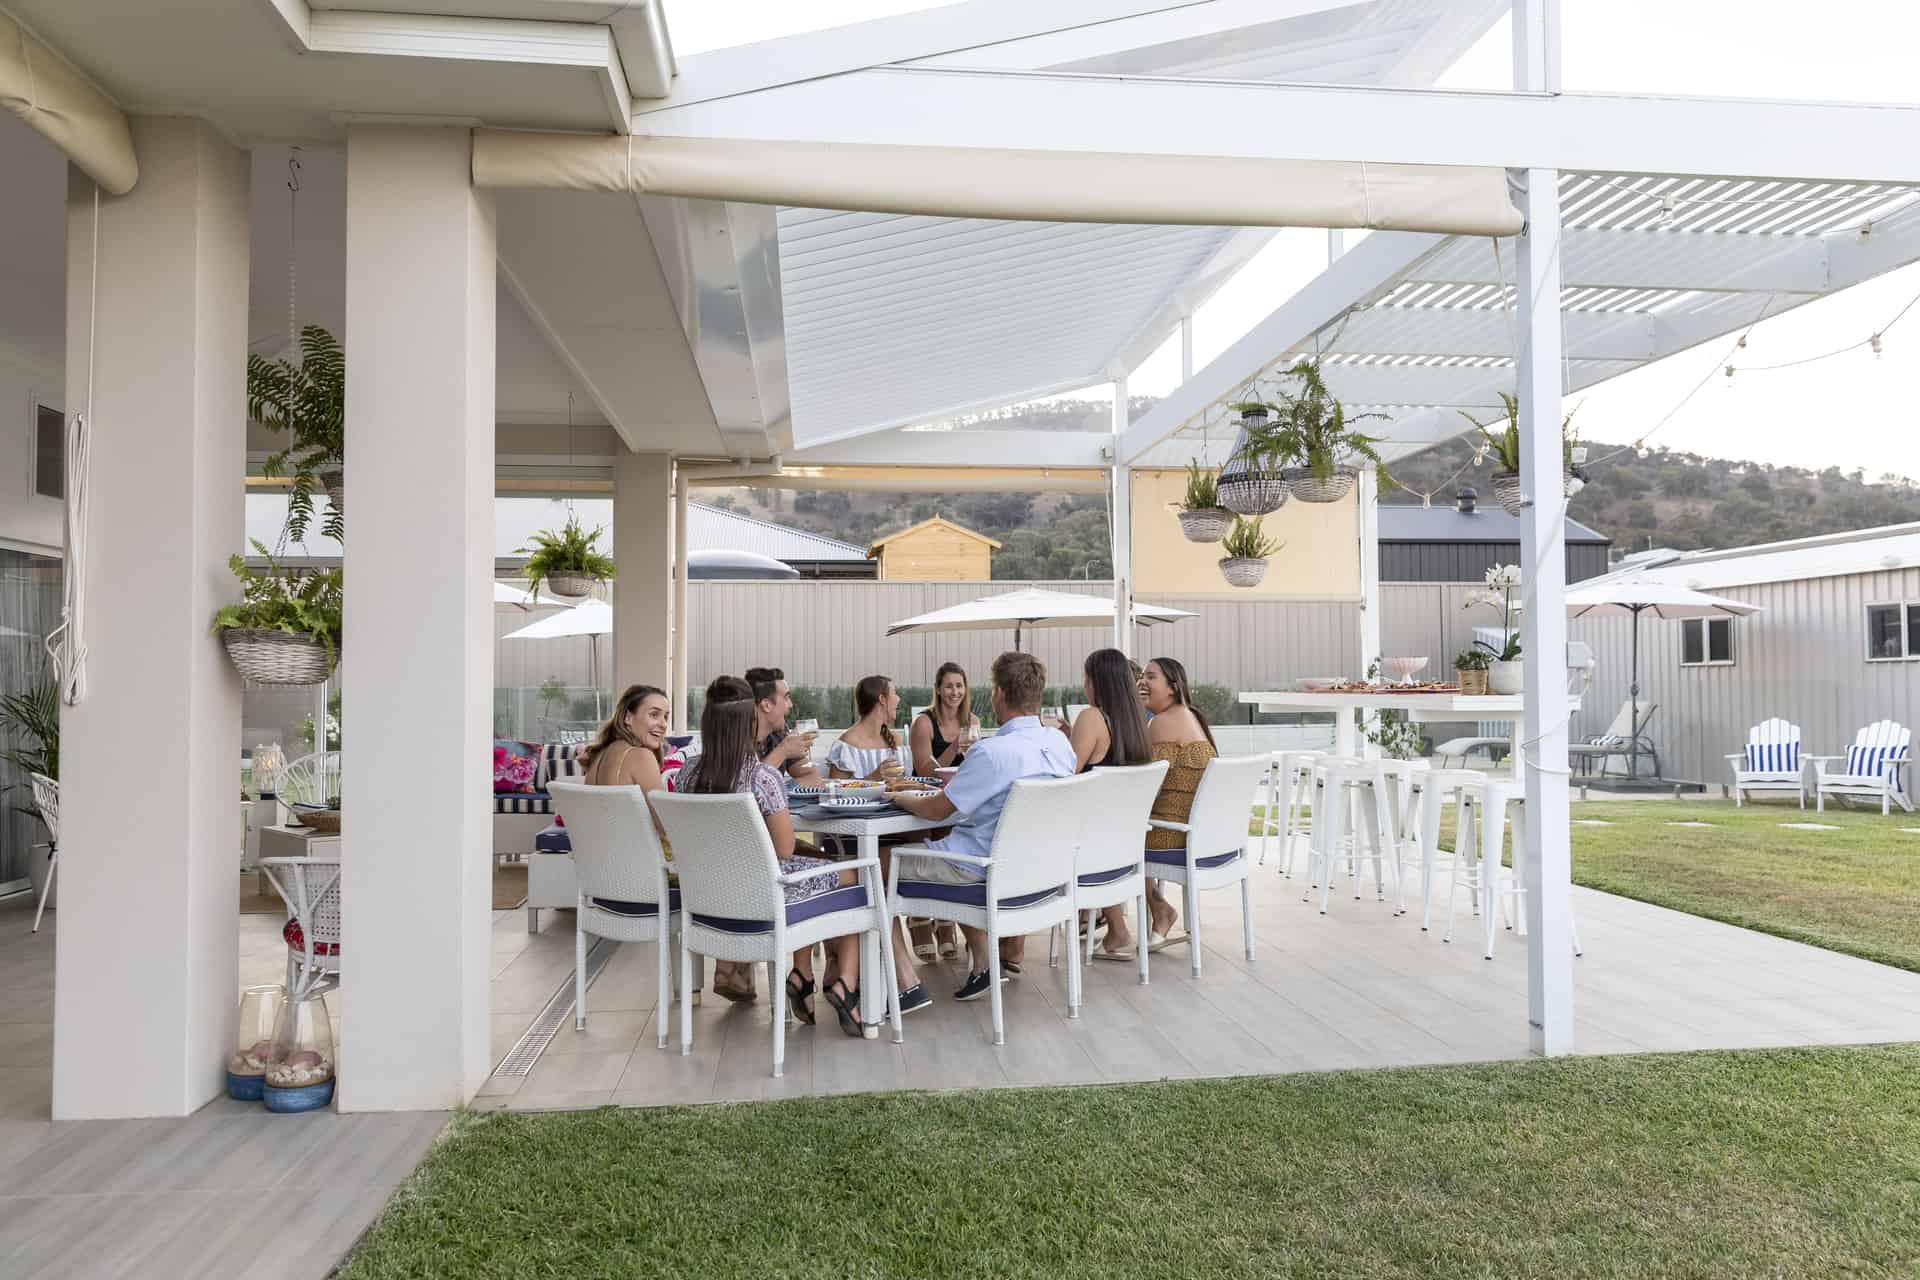 Eleven planning questions to help you design your ultimate alfresco